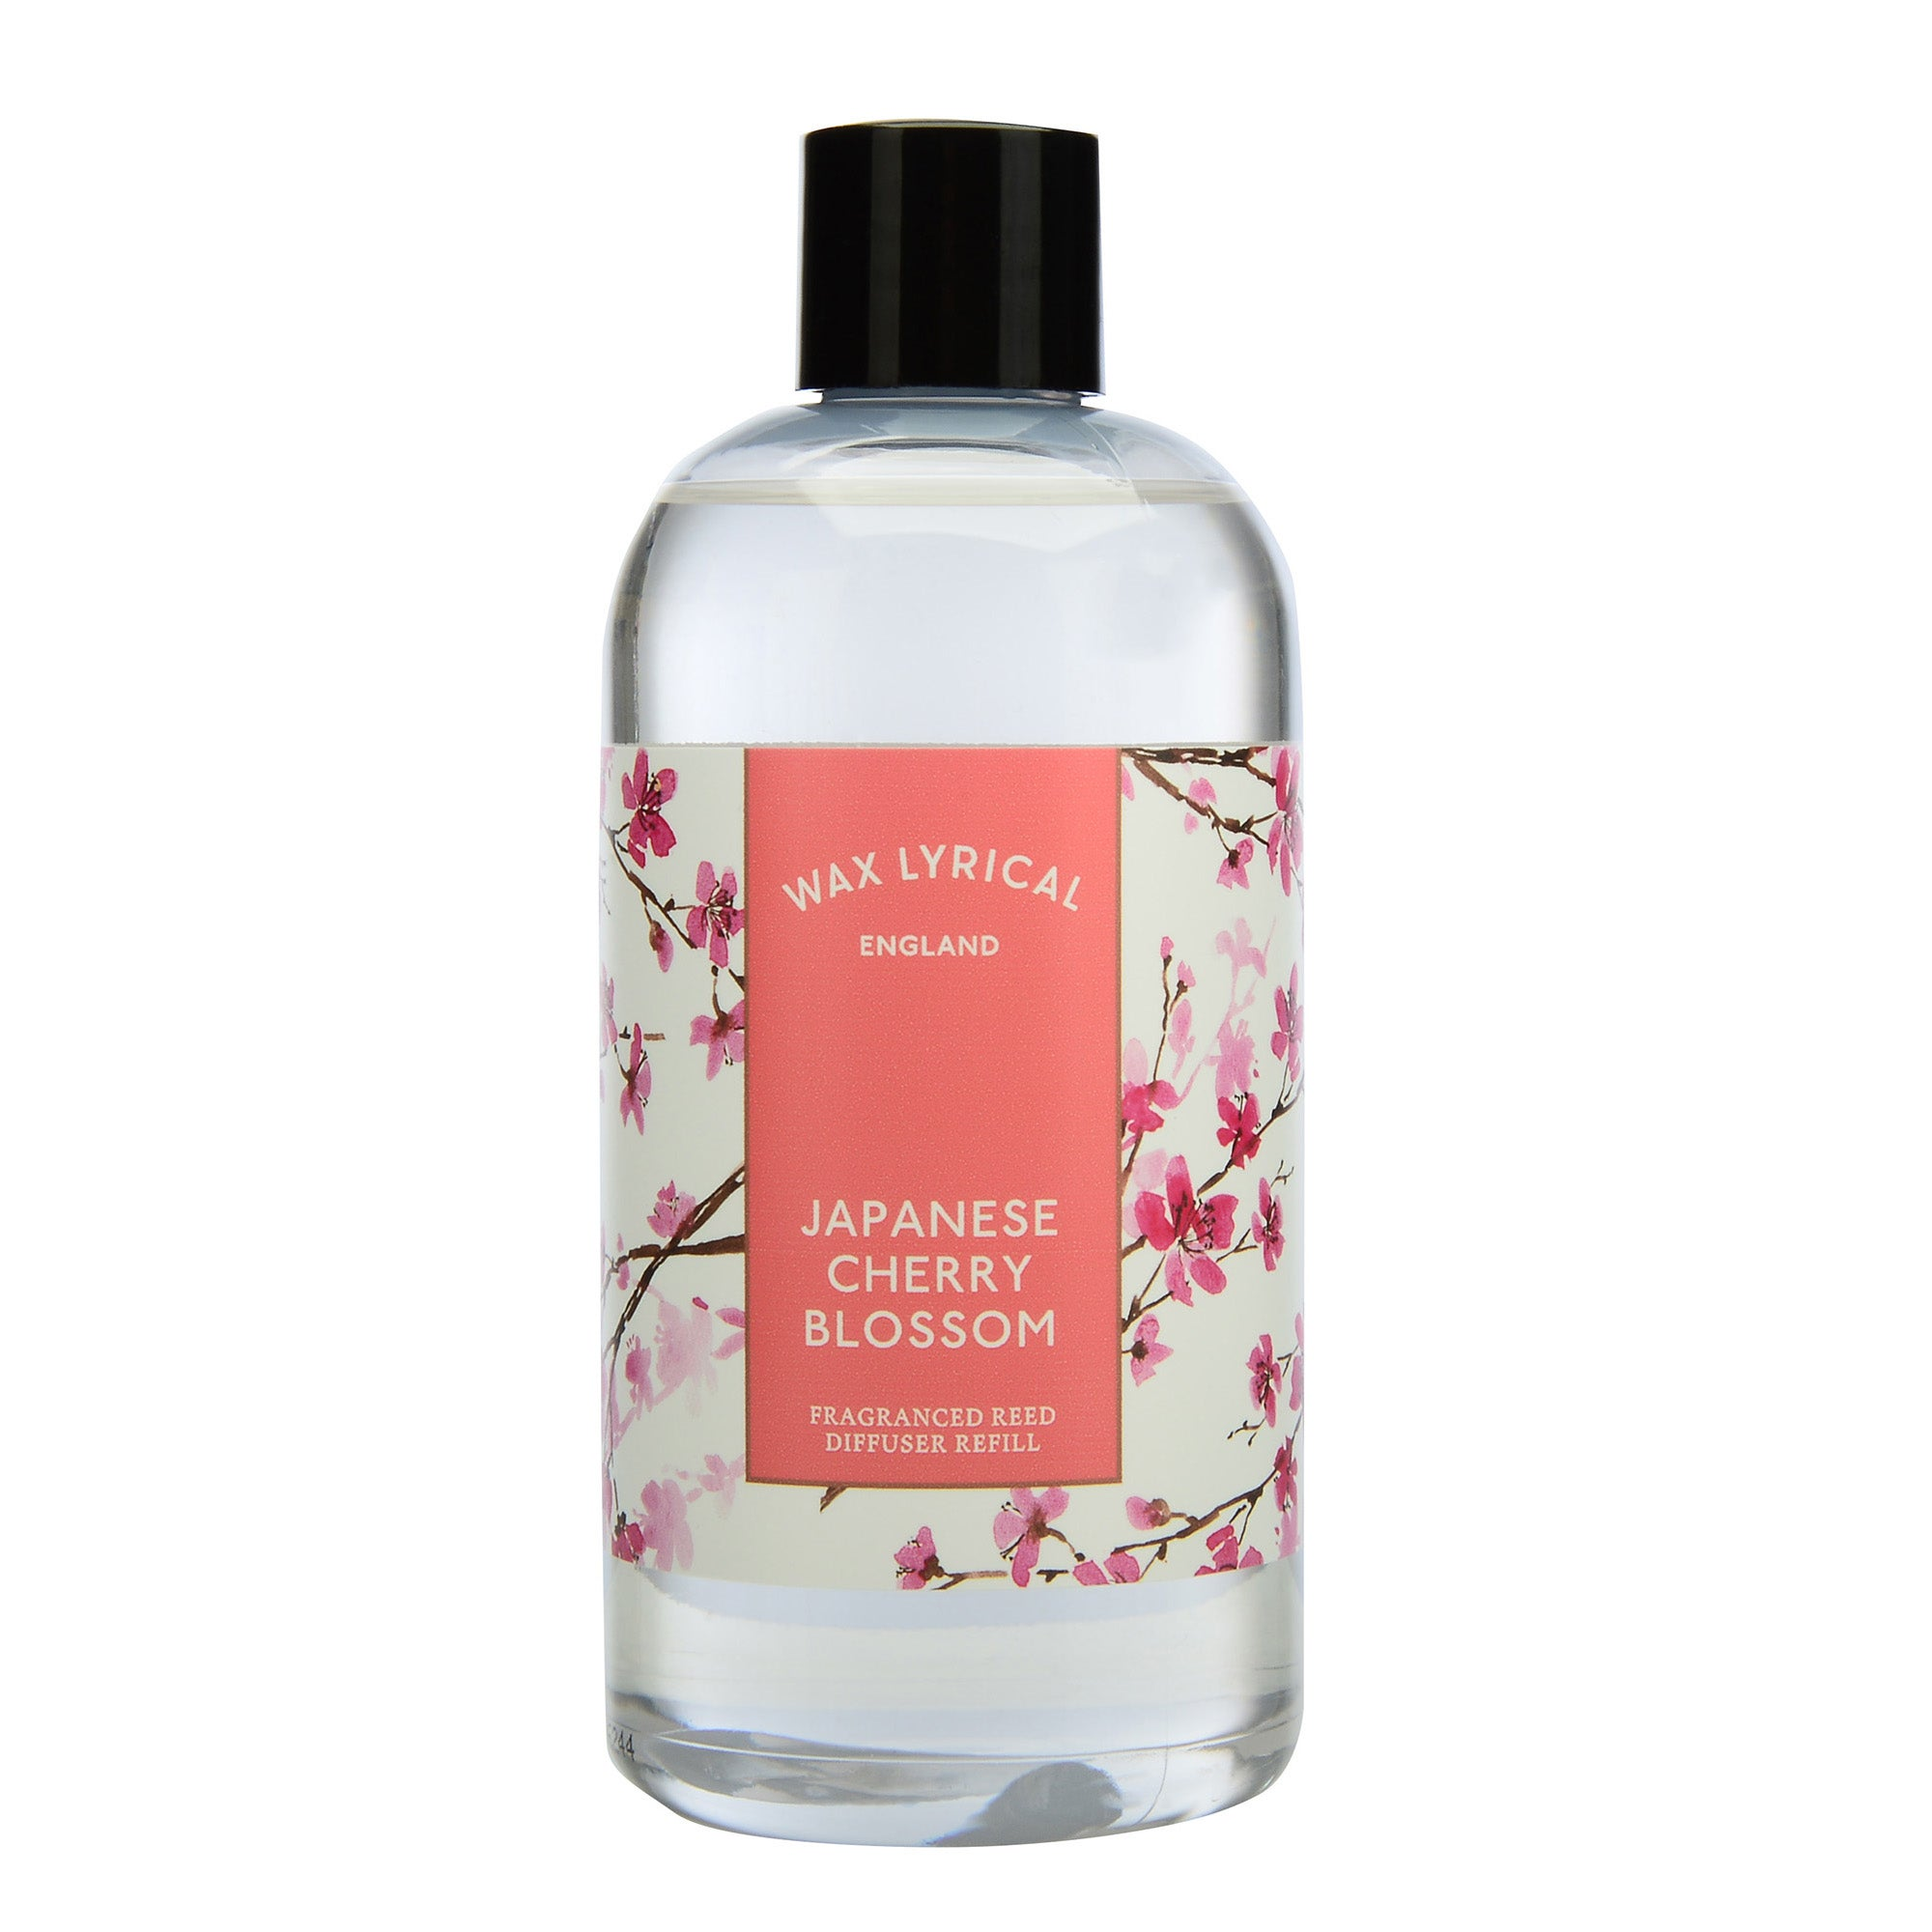 Wax Lyrical Cherry Blossom Reed Diffuser Refill